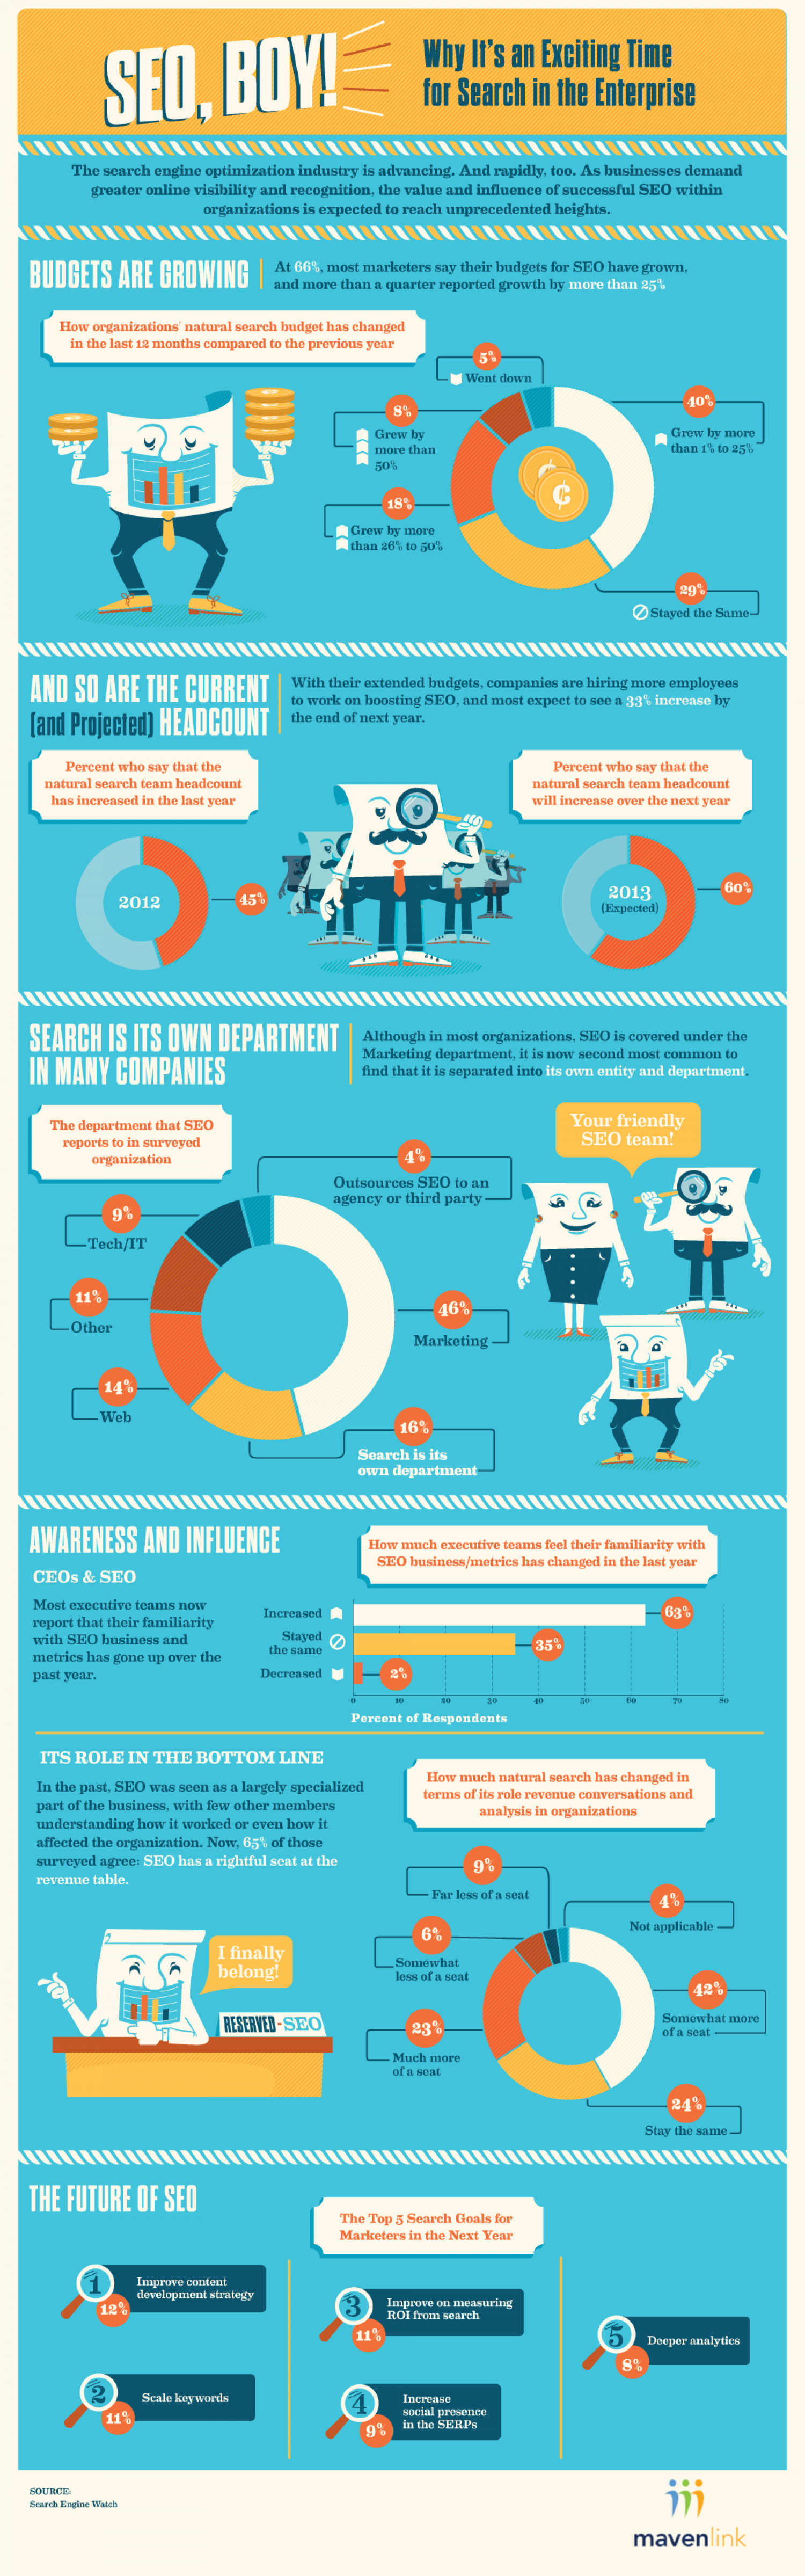 SEO, Boy! Why It's an Exciting Time for Search in the Enterprise Infographic